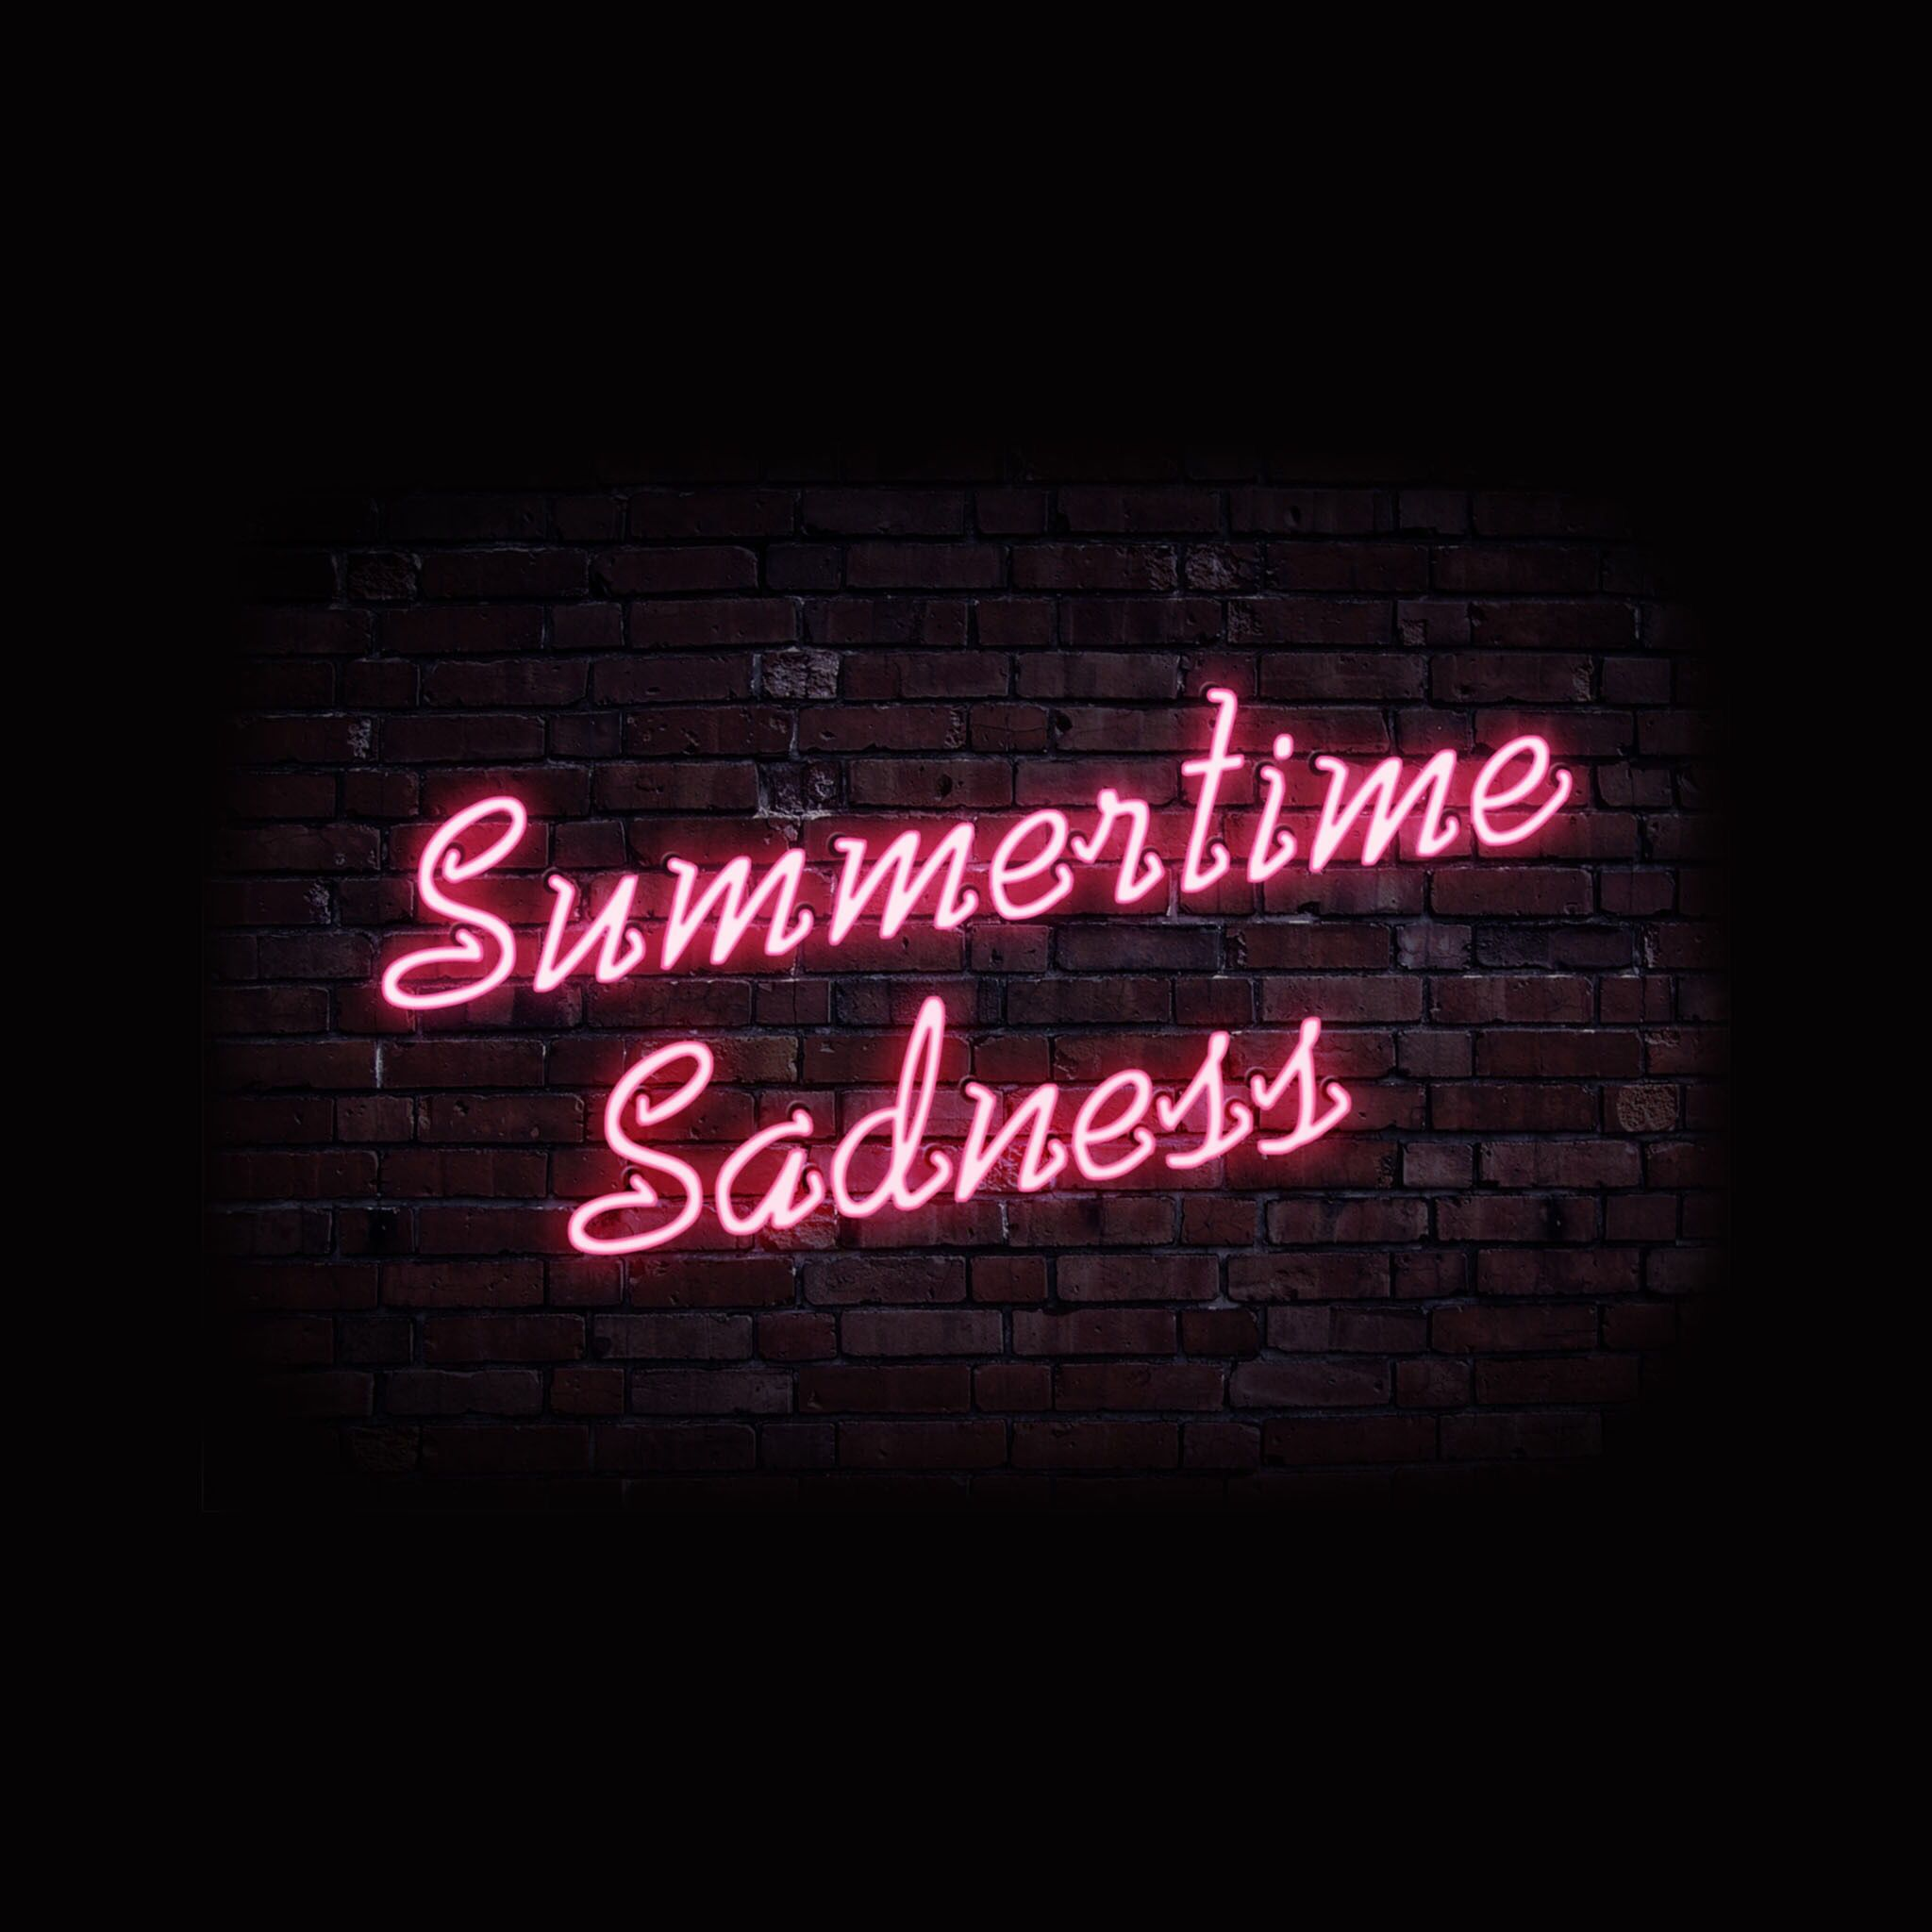 Pin By Brittany On Wallpapers Summertime Sadness Pink Aesthetic Neon Aesthetic